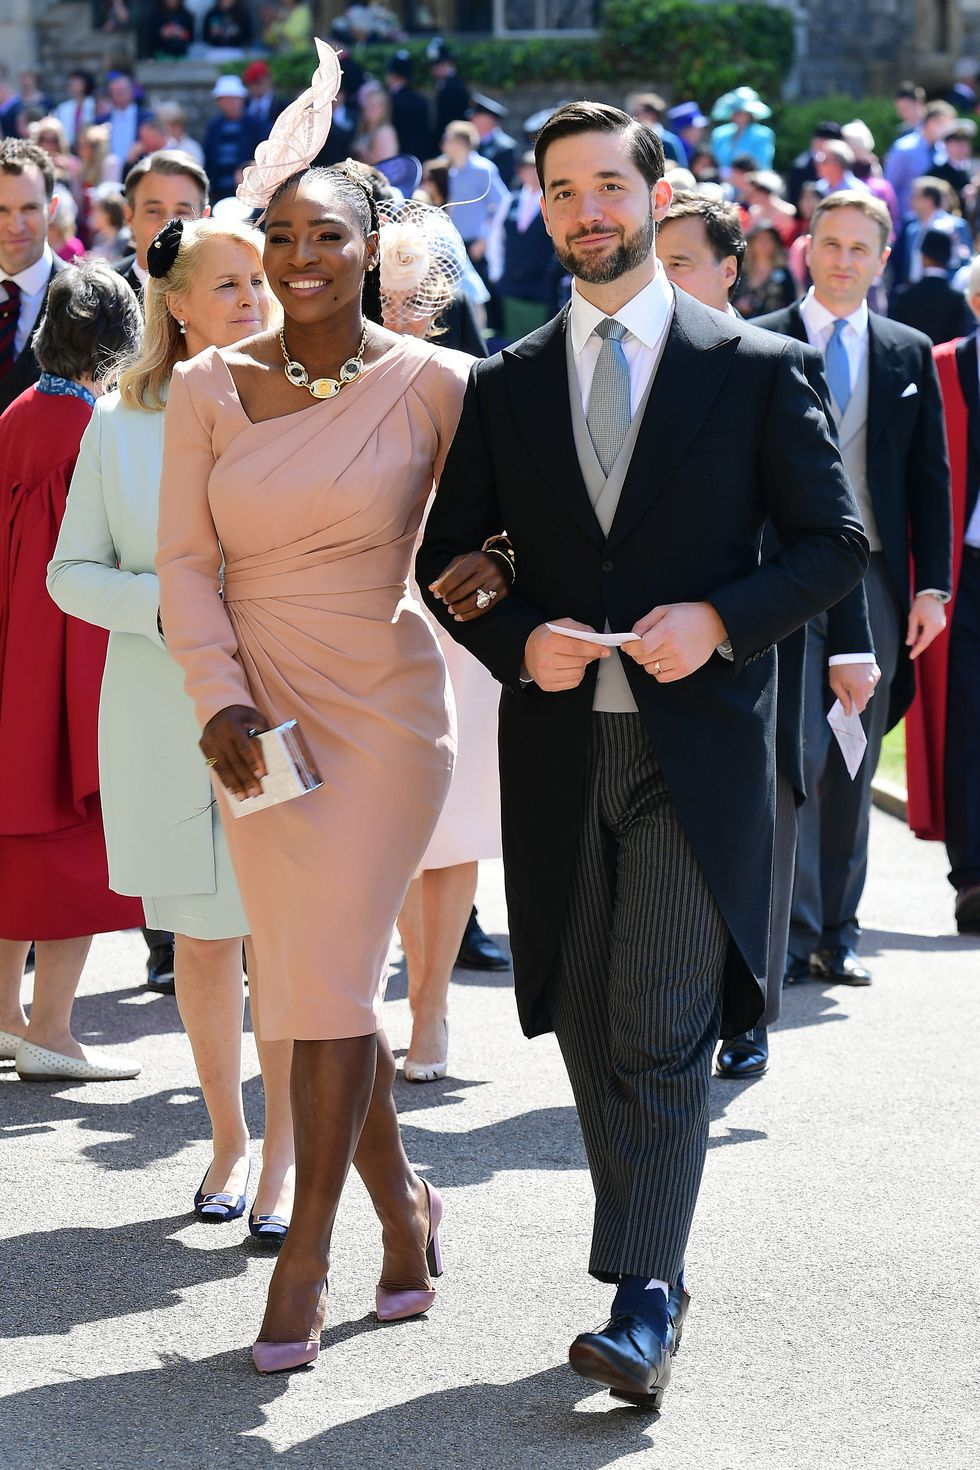 wedding serena-williams-alexis-ohanian-1526738985